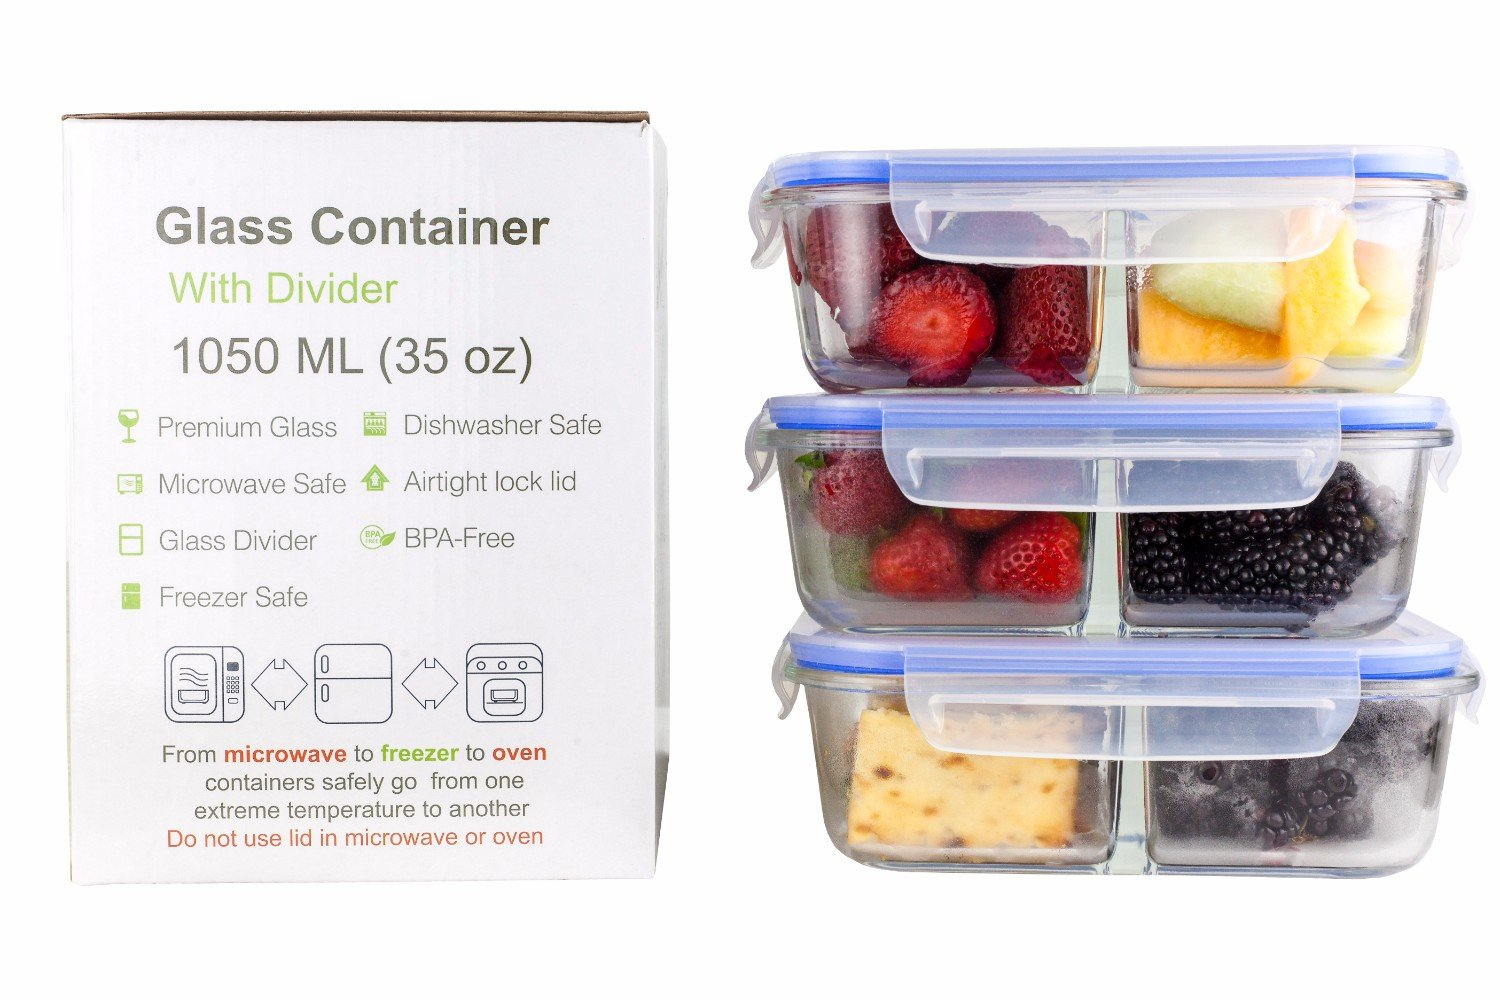 Glass Meal Prep Food Storage Portion Control Container 2-Compartment Divider with Locking Lid/Premium Quality/BPA-FREE/Air Tight/Leakproof/Freezer/Oven/Dishwasher/Microwave Safe (1-3 pc sets)35 oz (3)